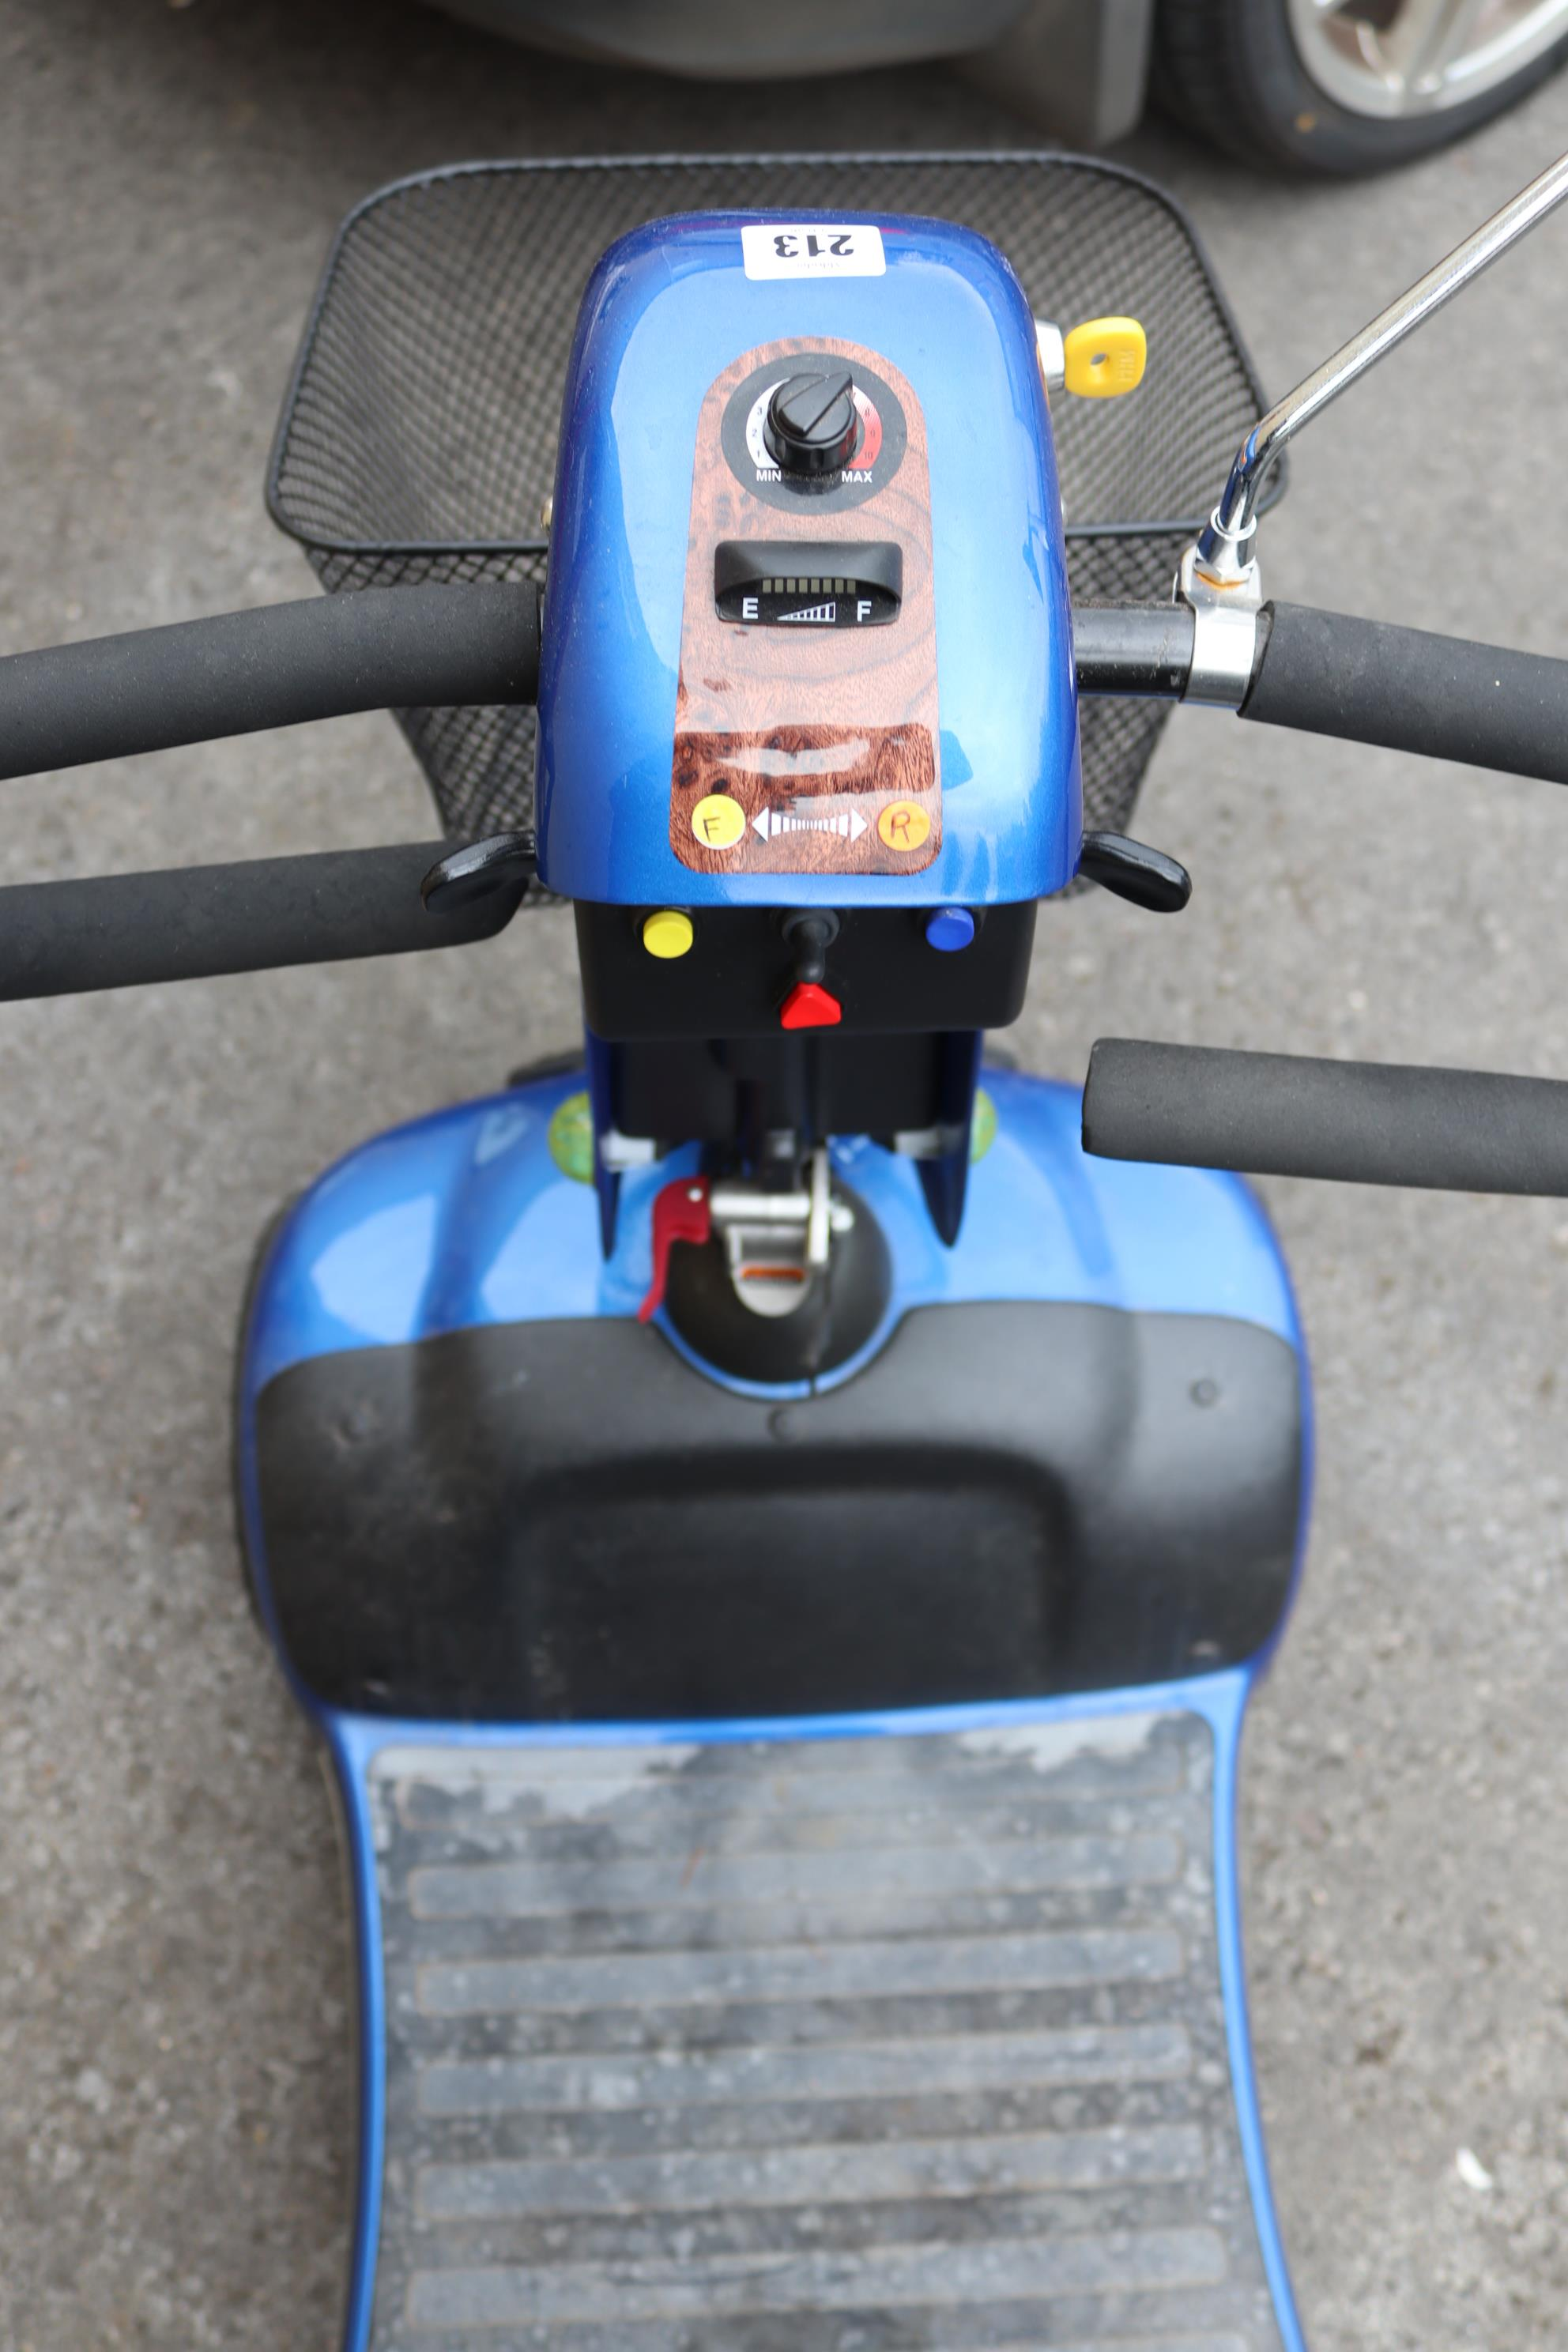 A Shoprider mobility scooter with battery, charger, & key. - Image 5 of 8